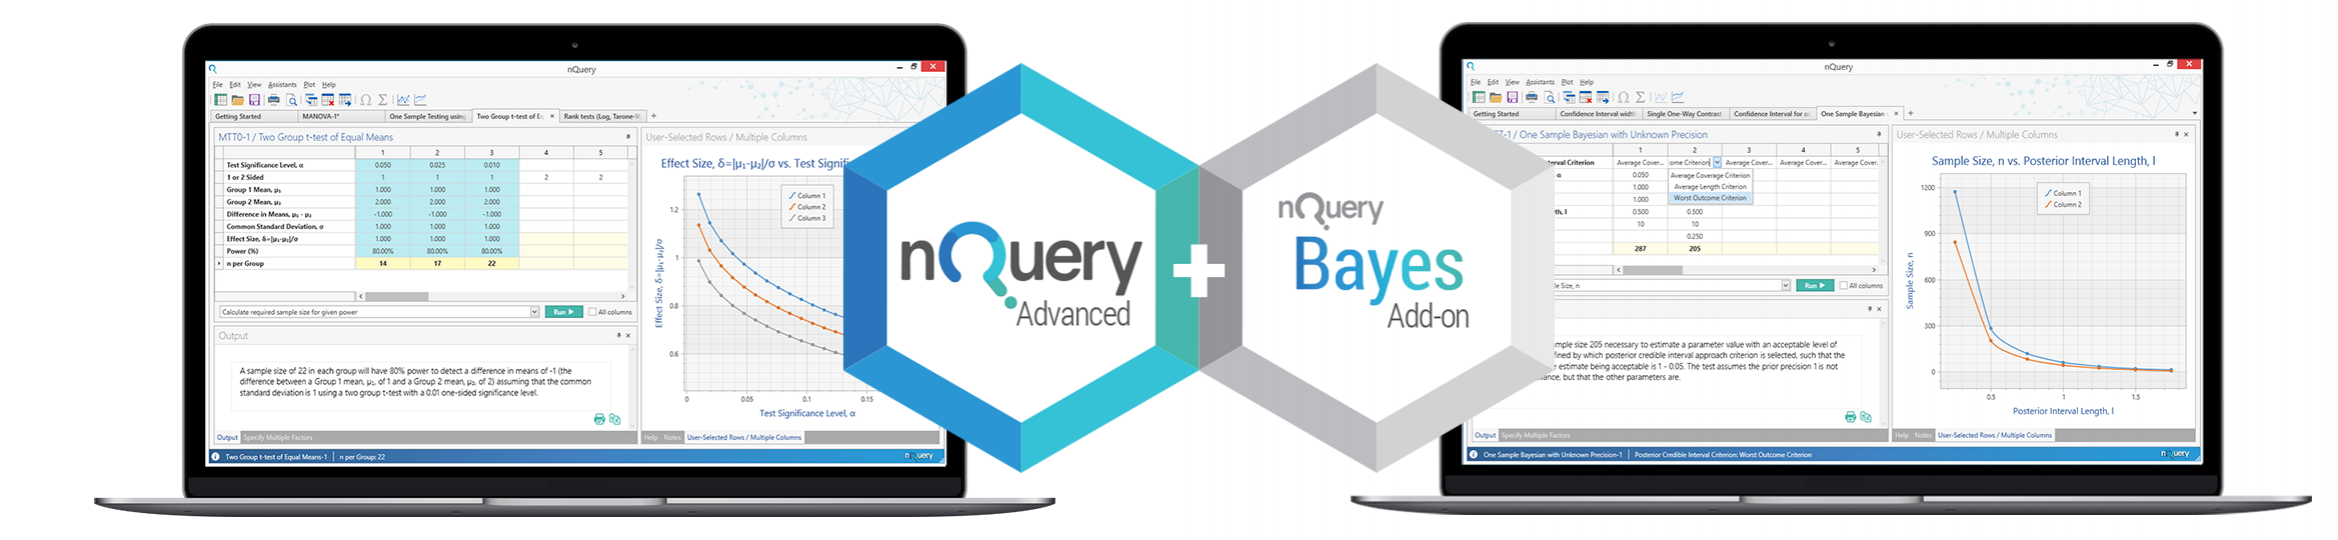 nQuery and Bayes Add-on Module with Laptop x 2 width 0.2-394568-edited.png